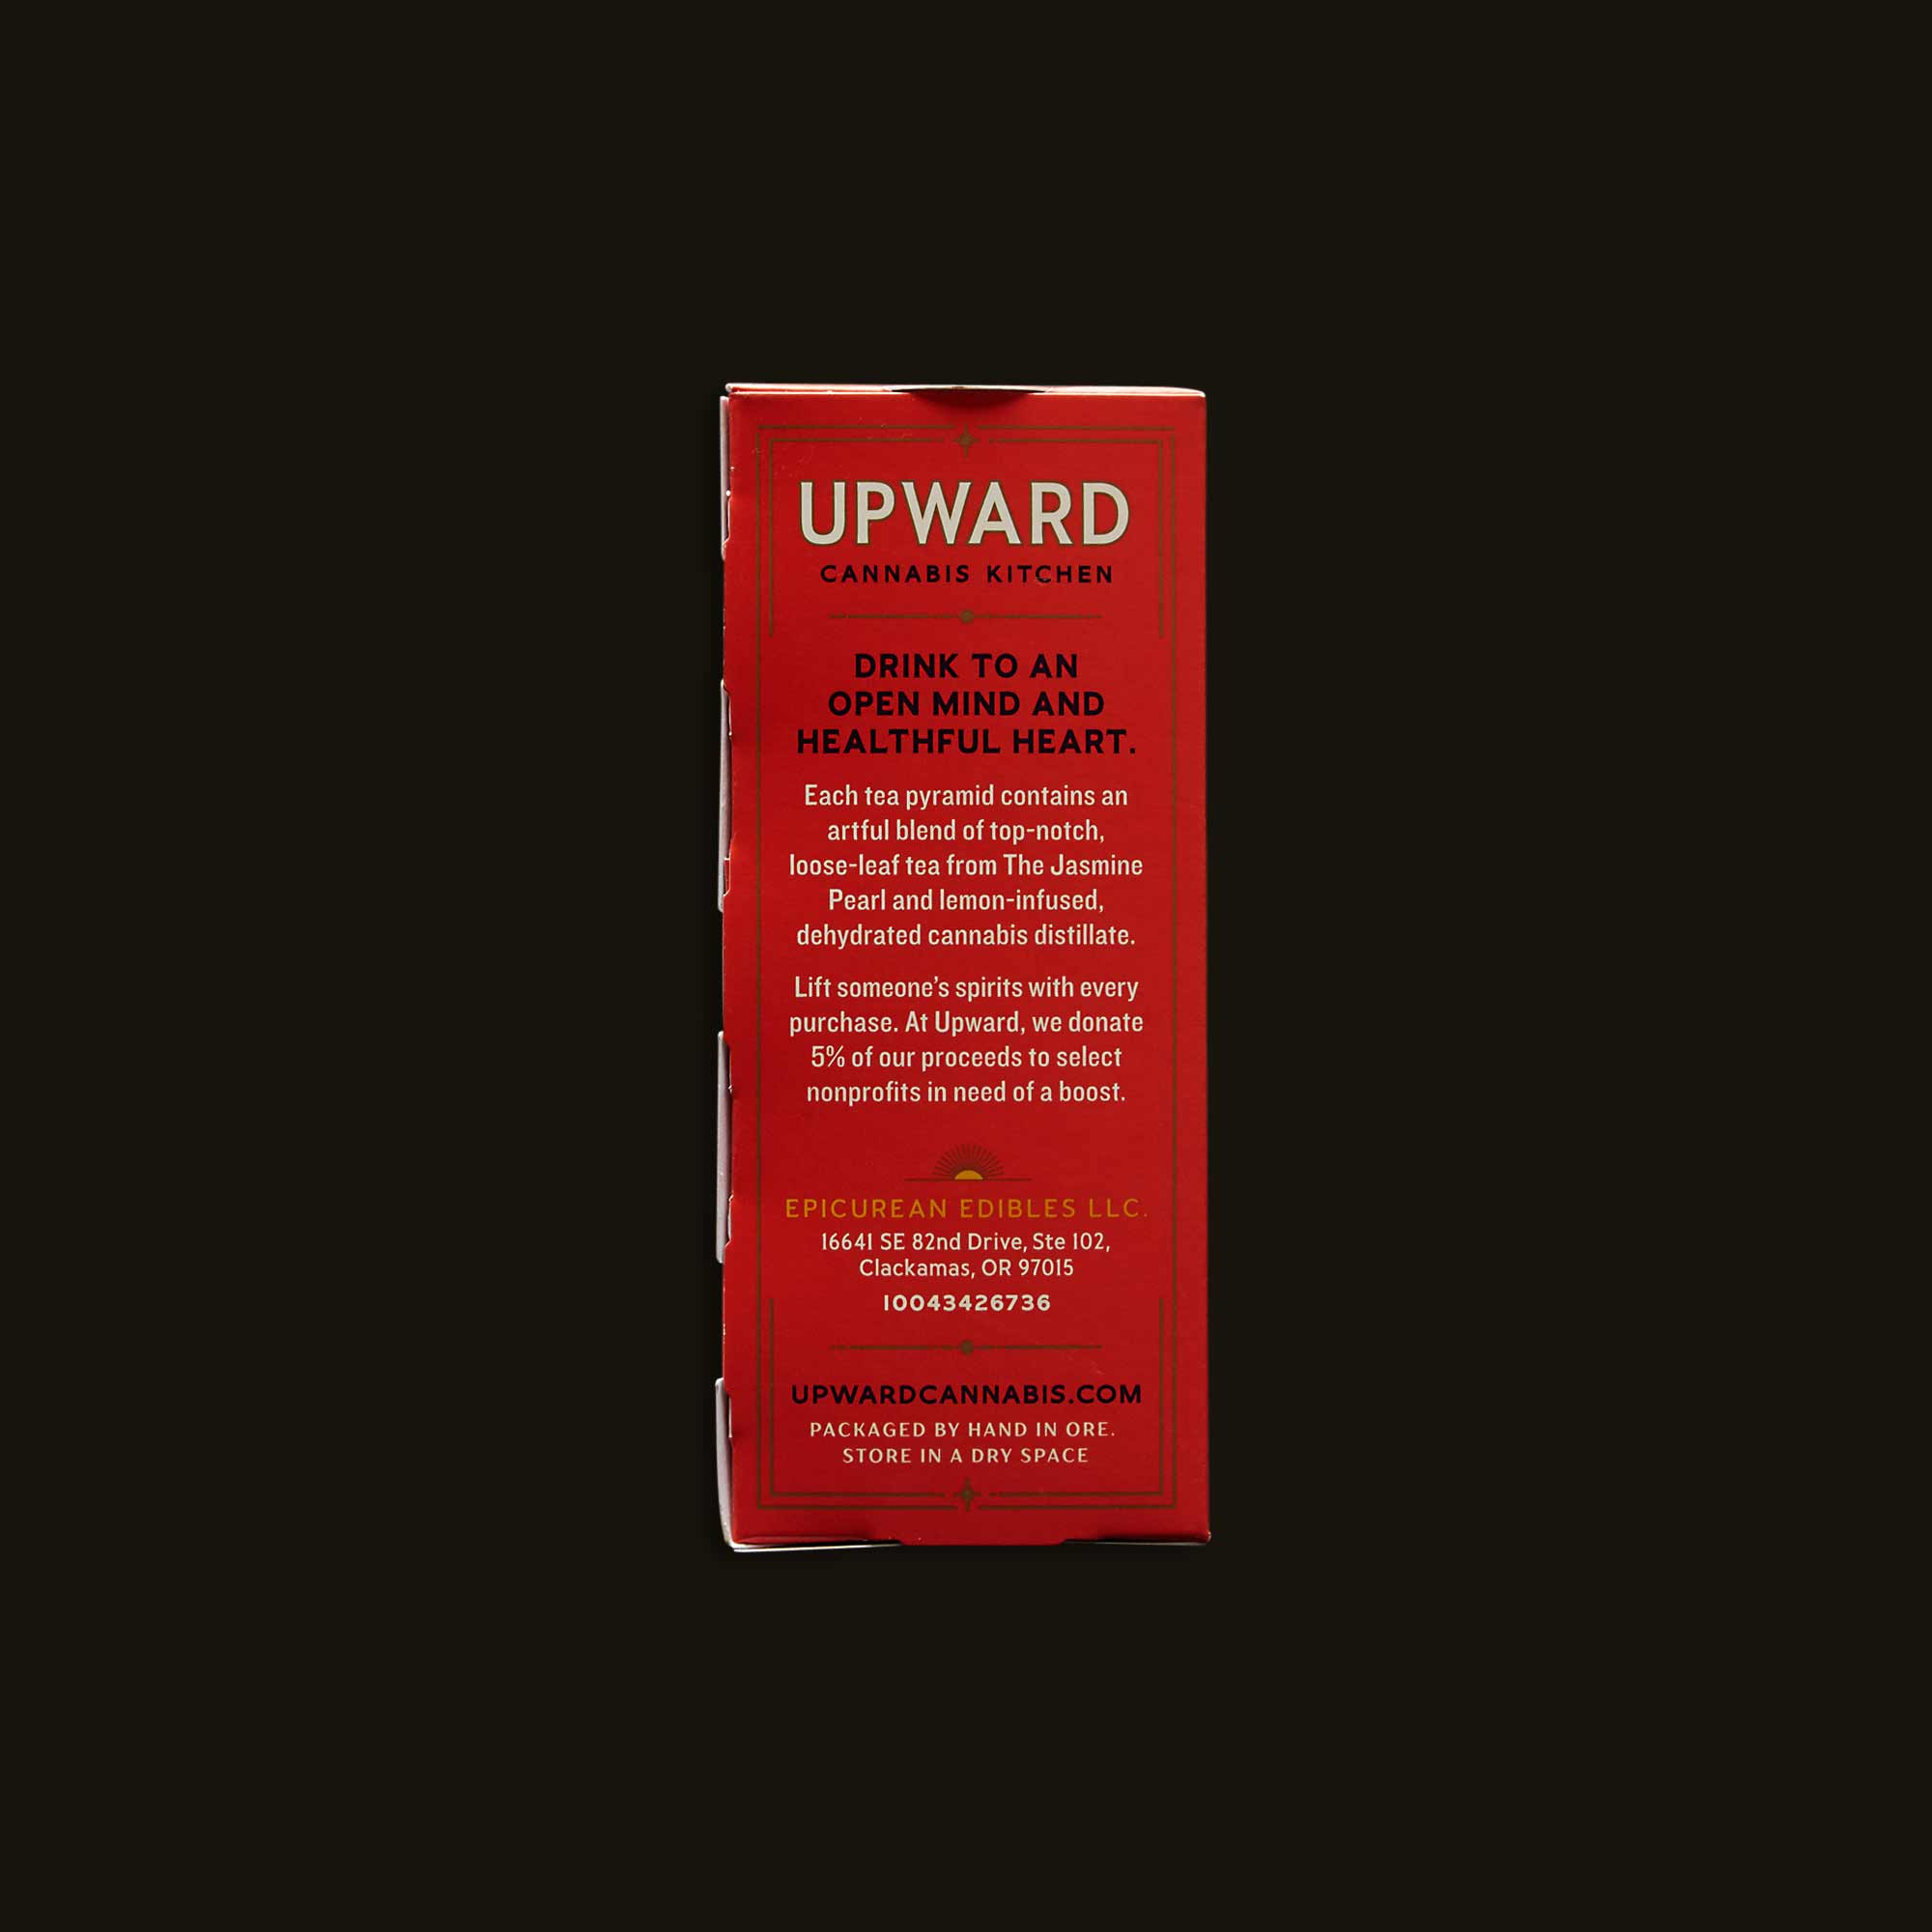 Upward Cannabis Kitchen Jasmine Harmony & Lemon Piqmiup